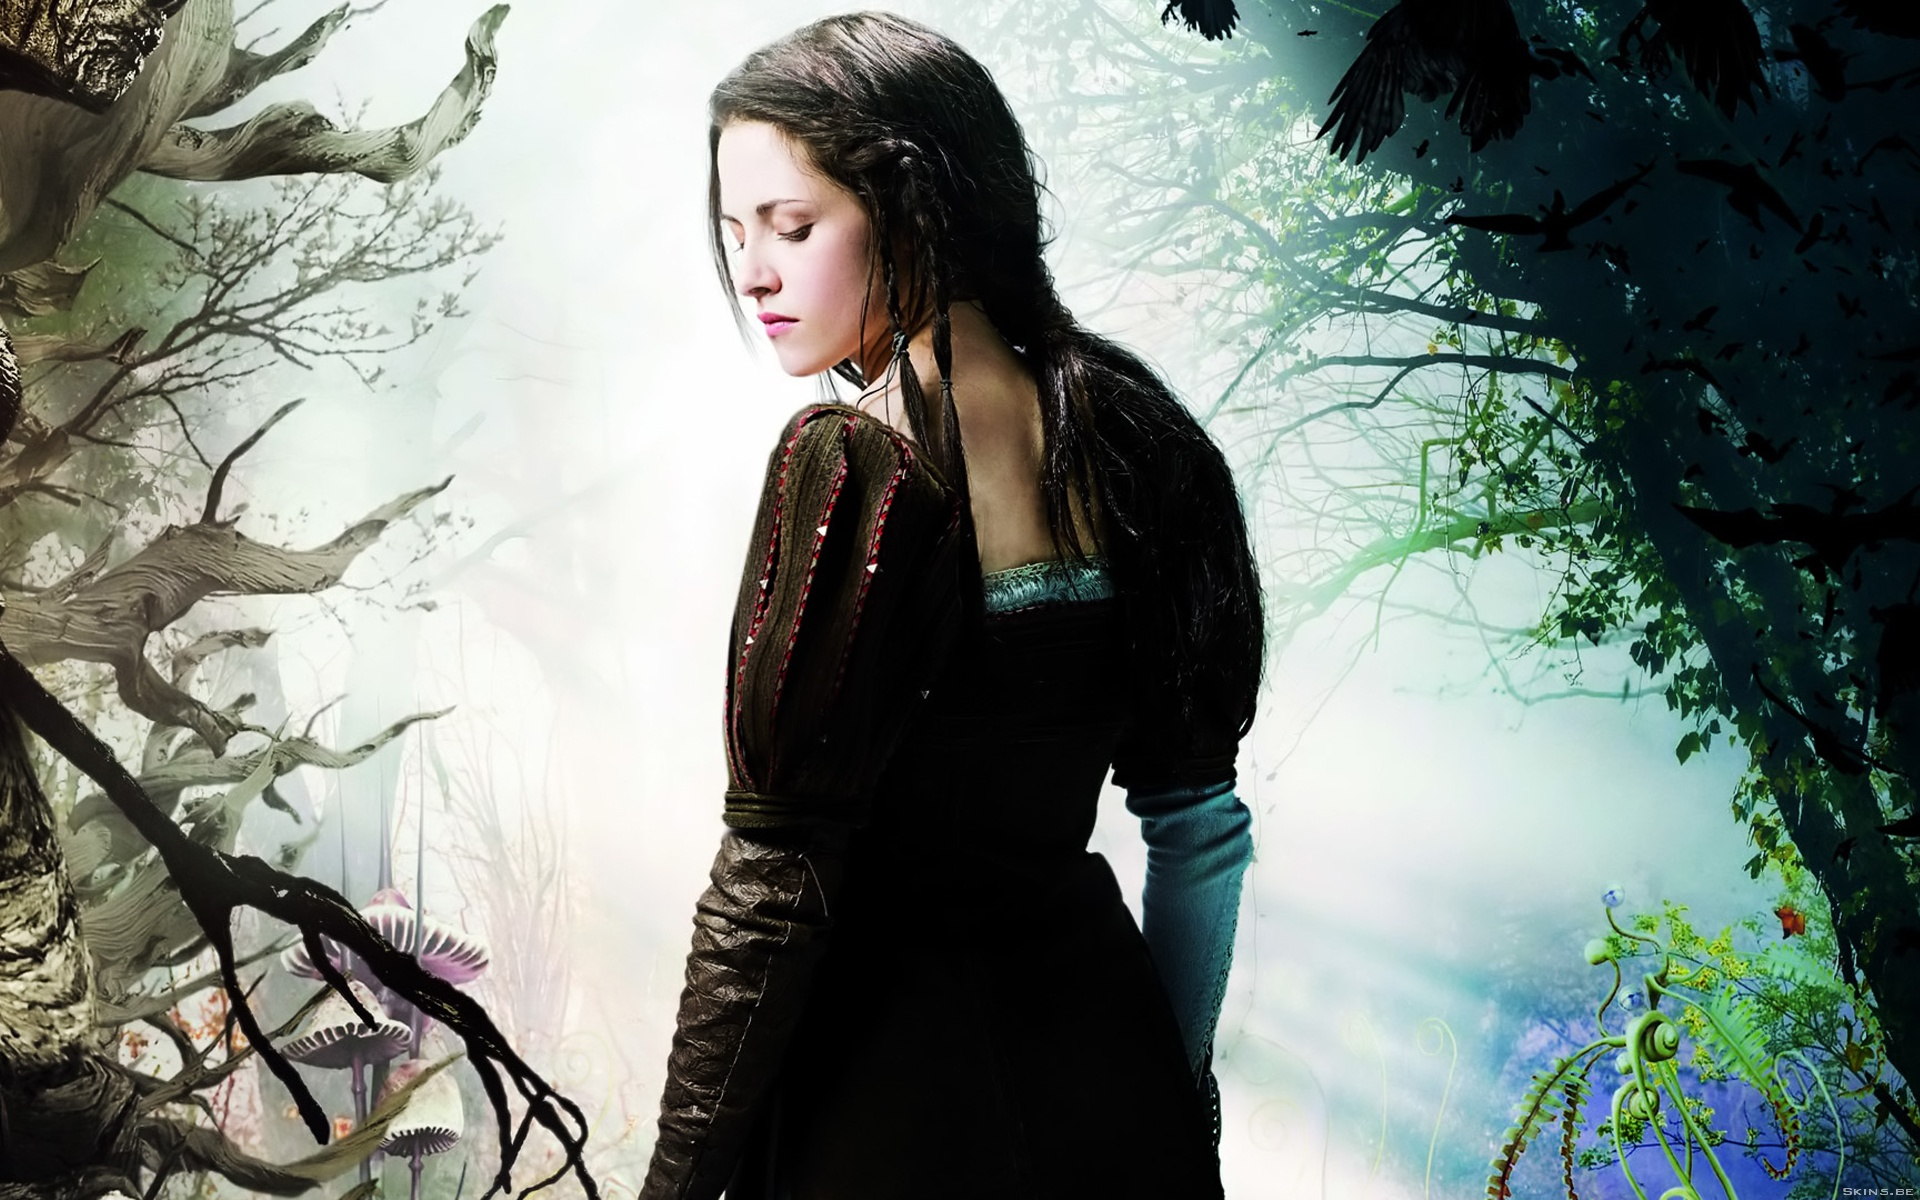 Kristen Stewart in Snow White and the Huntsman 3273.05 Kb